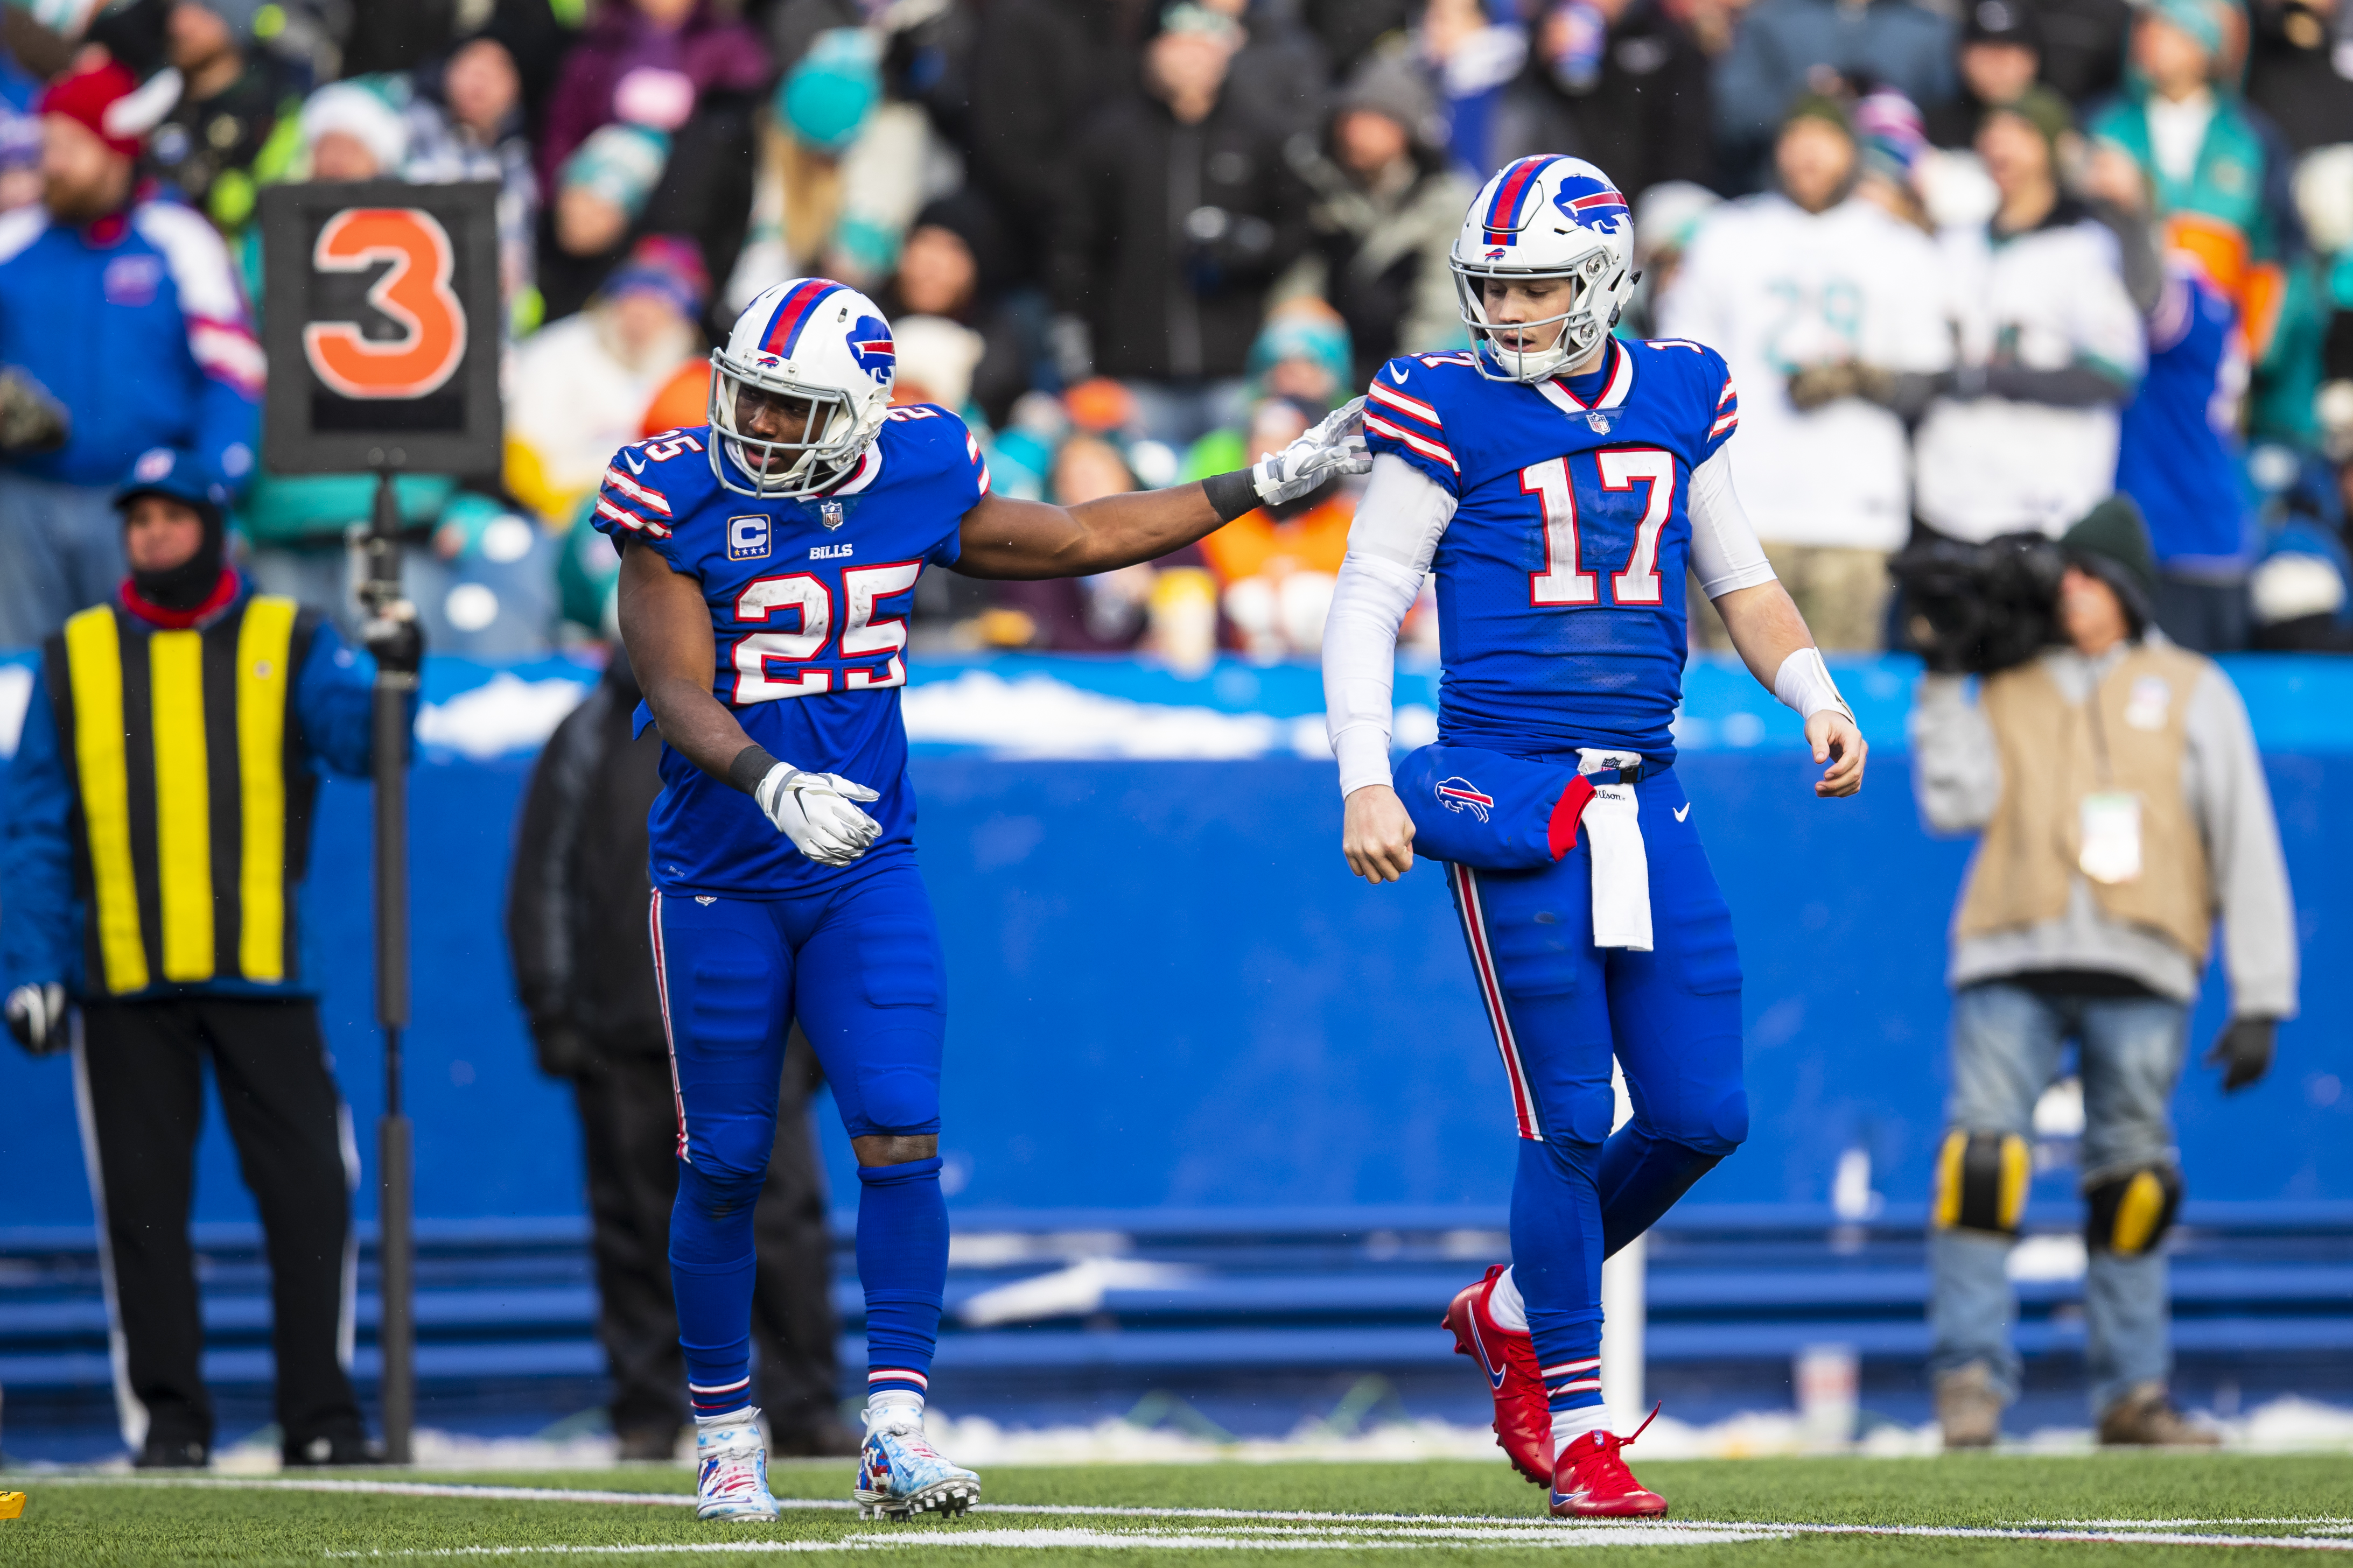 Buffalo Bills 2019 fantasy football preview - Buffalo Rumblings